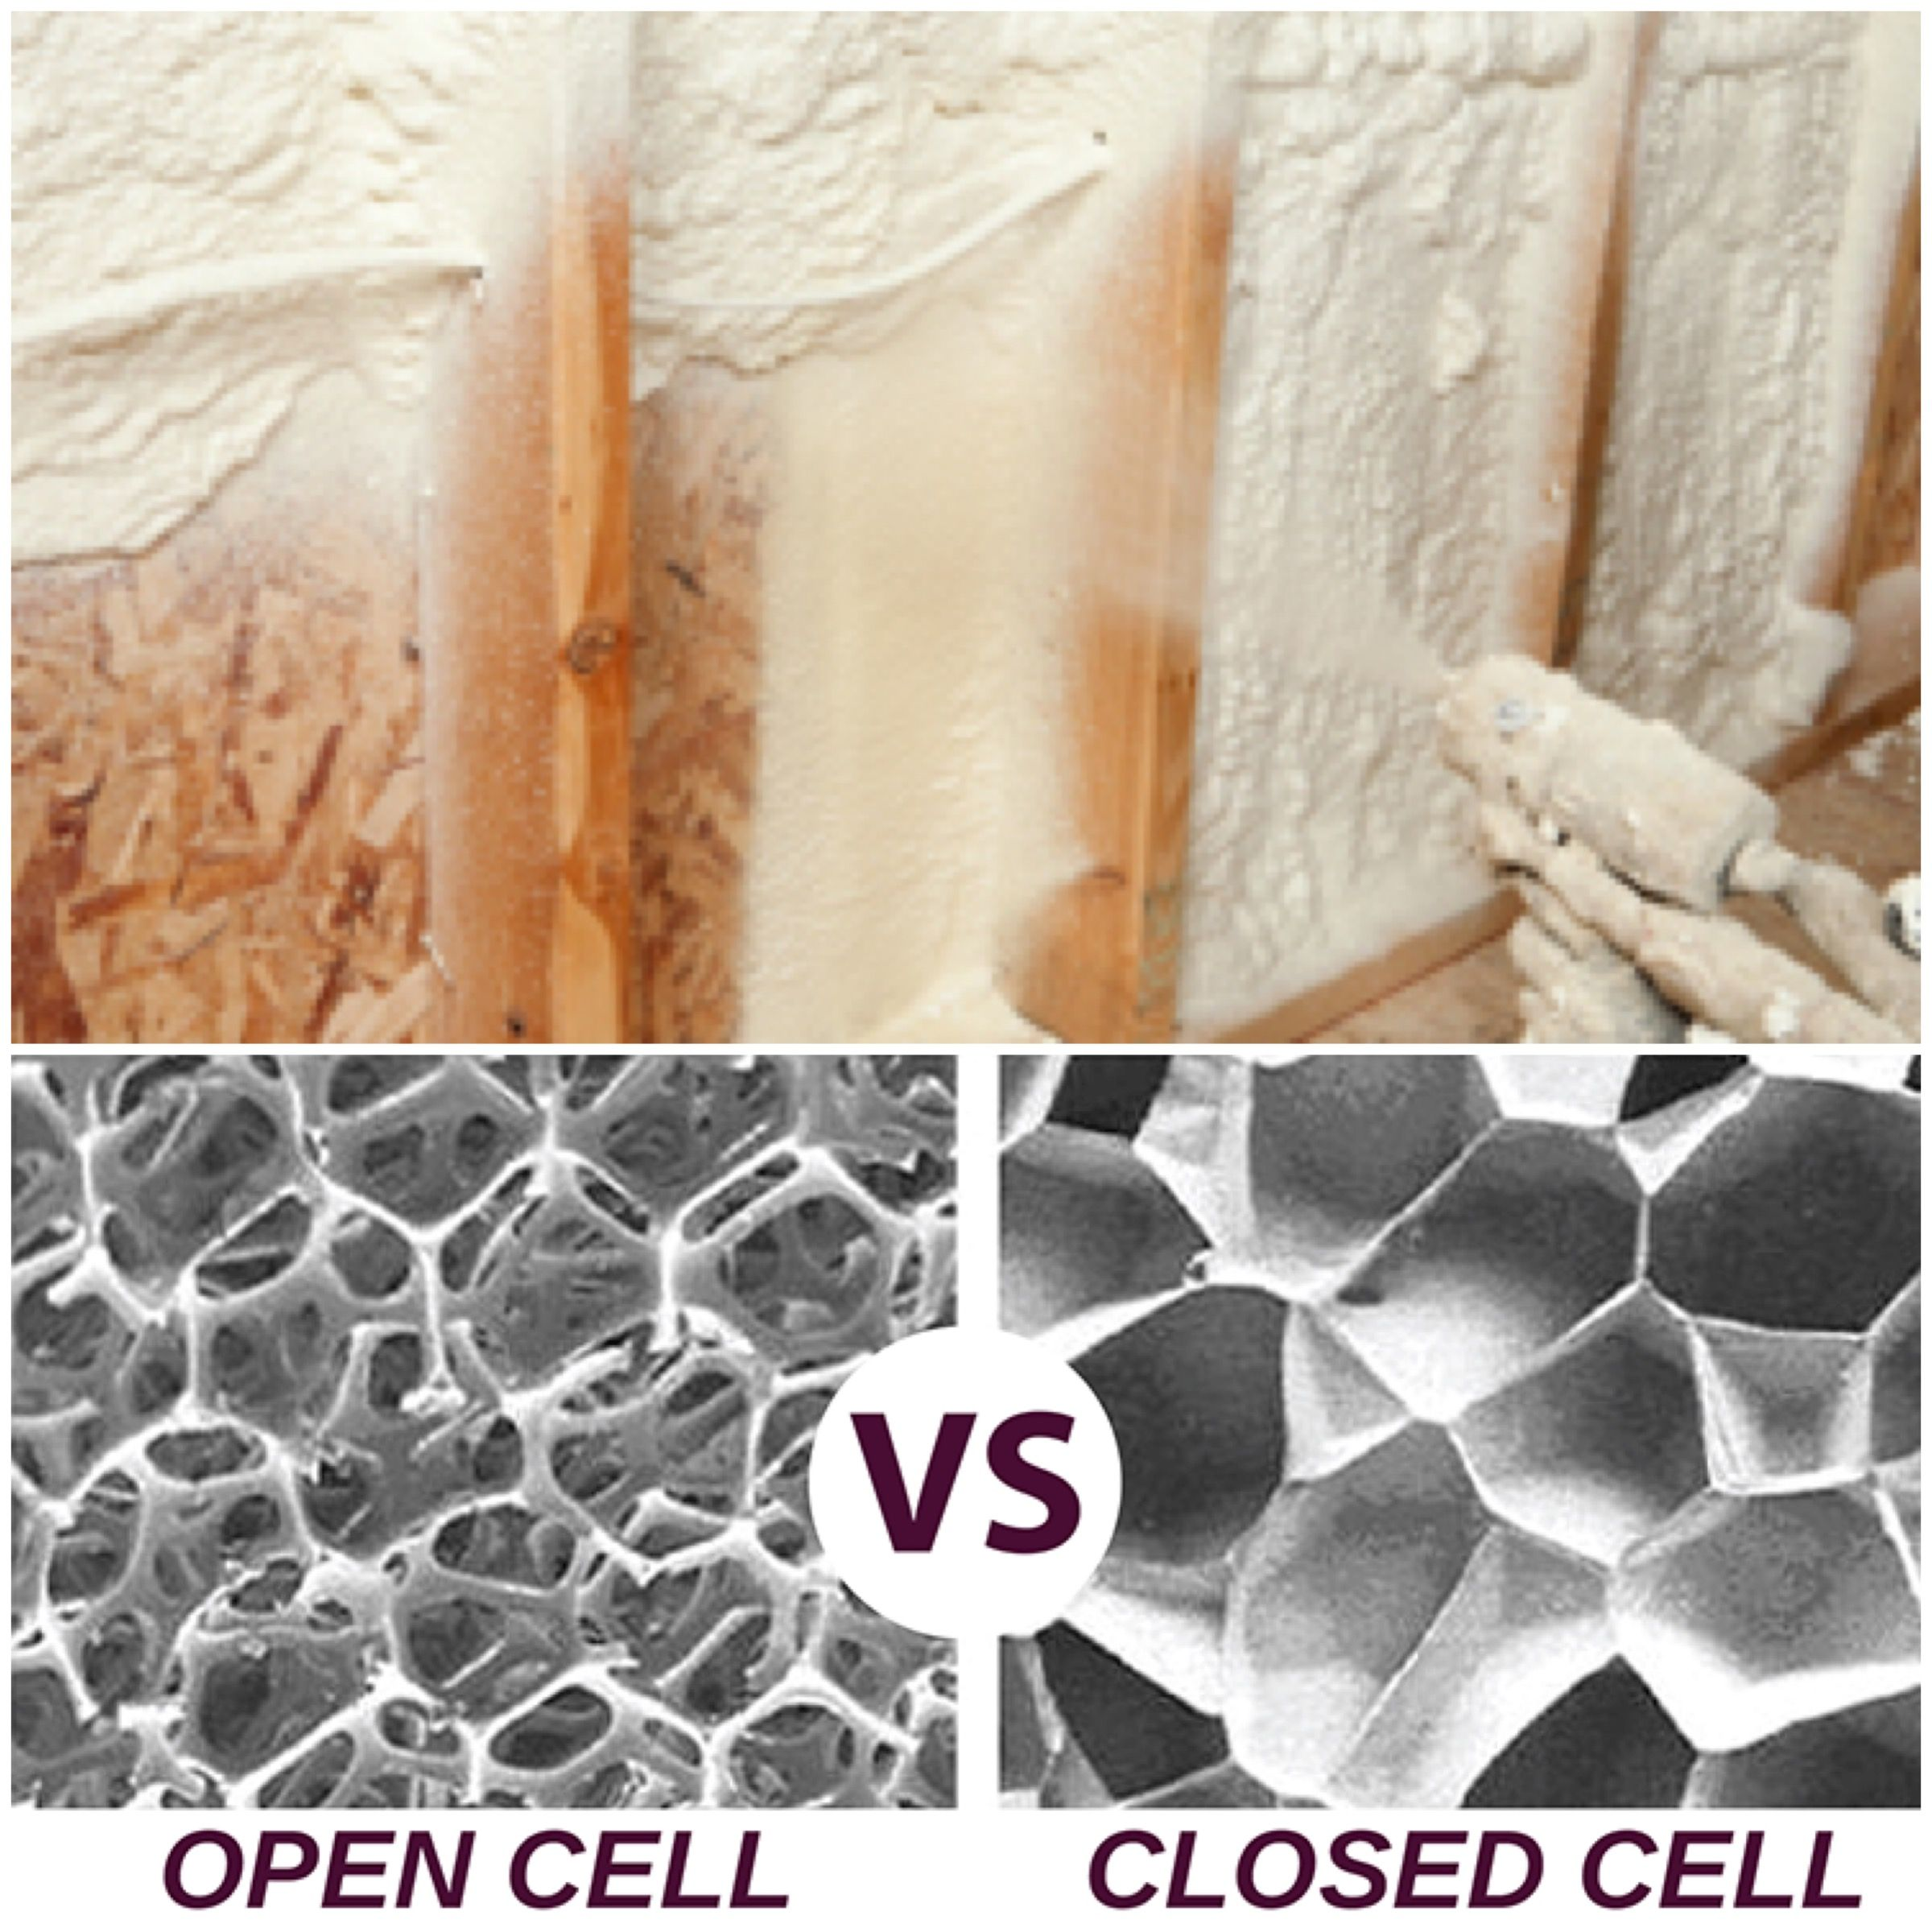 Open Cell Spray Foam Is Lighter 0 5 Lbs Cu Ft Softer To Touch Uses Water As A Blowing Agent And Has A Lower R Value Of 3 Spray Foam Mold Growth R Value